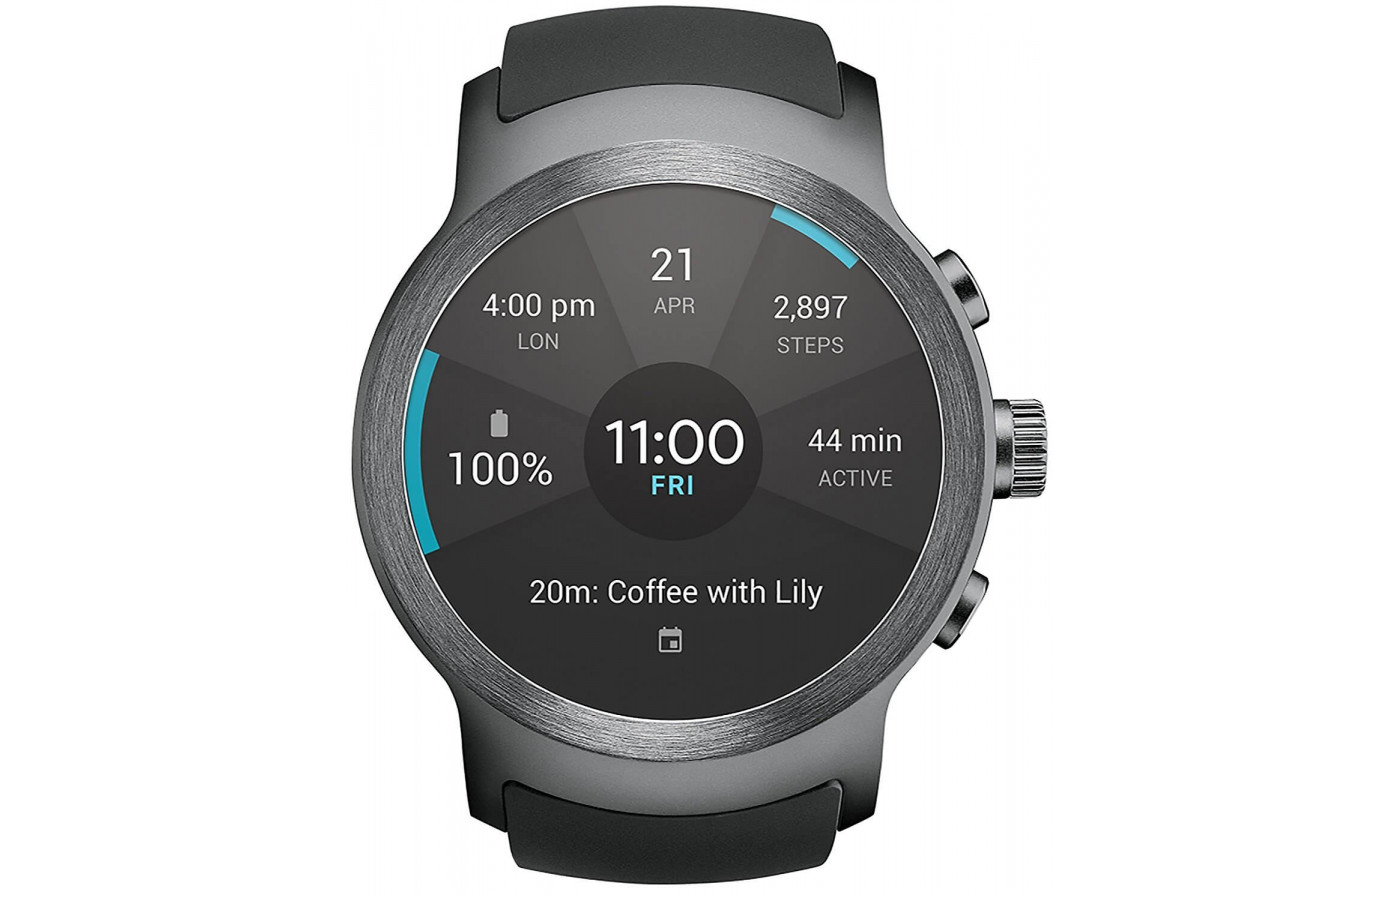 LG Watch Sport face